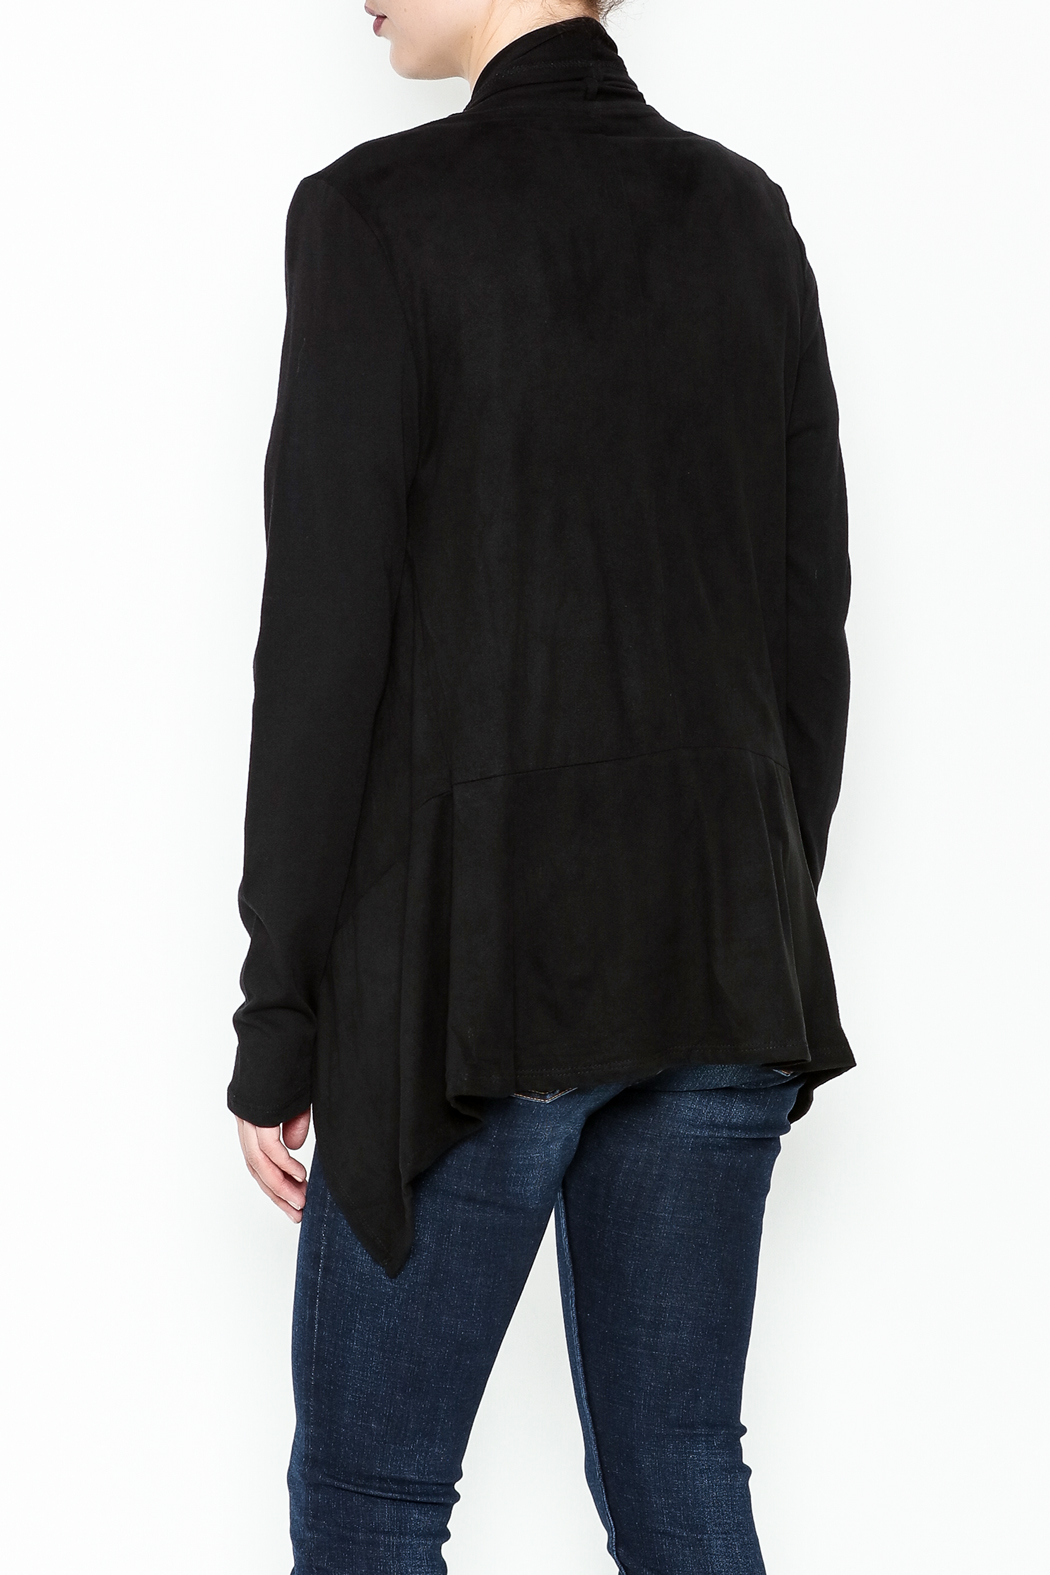 z supply Suede Waterfall Jacket - Back Cropped Image